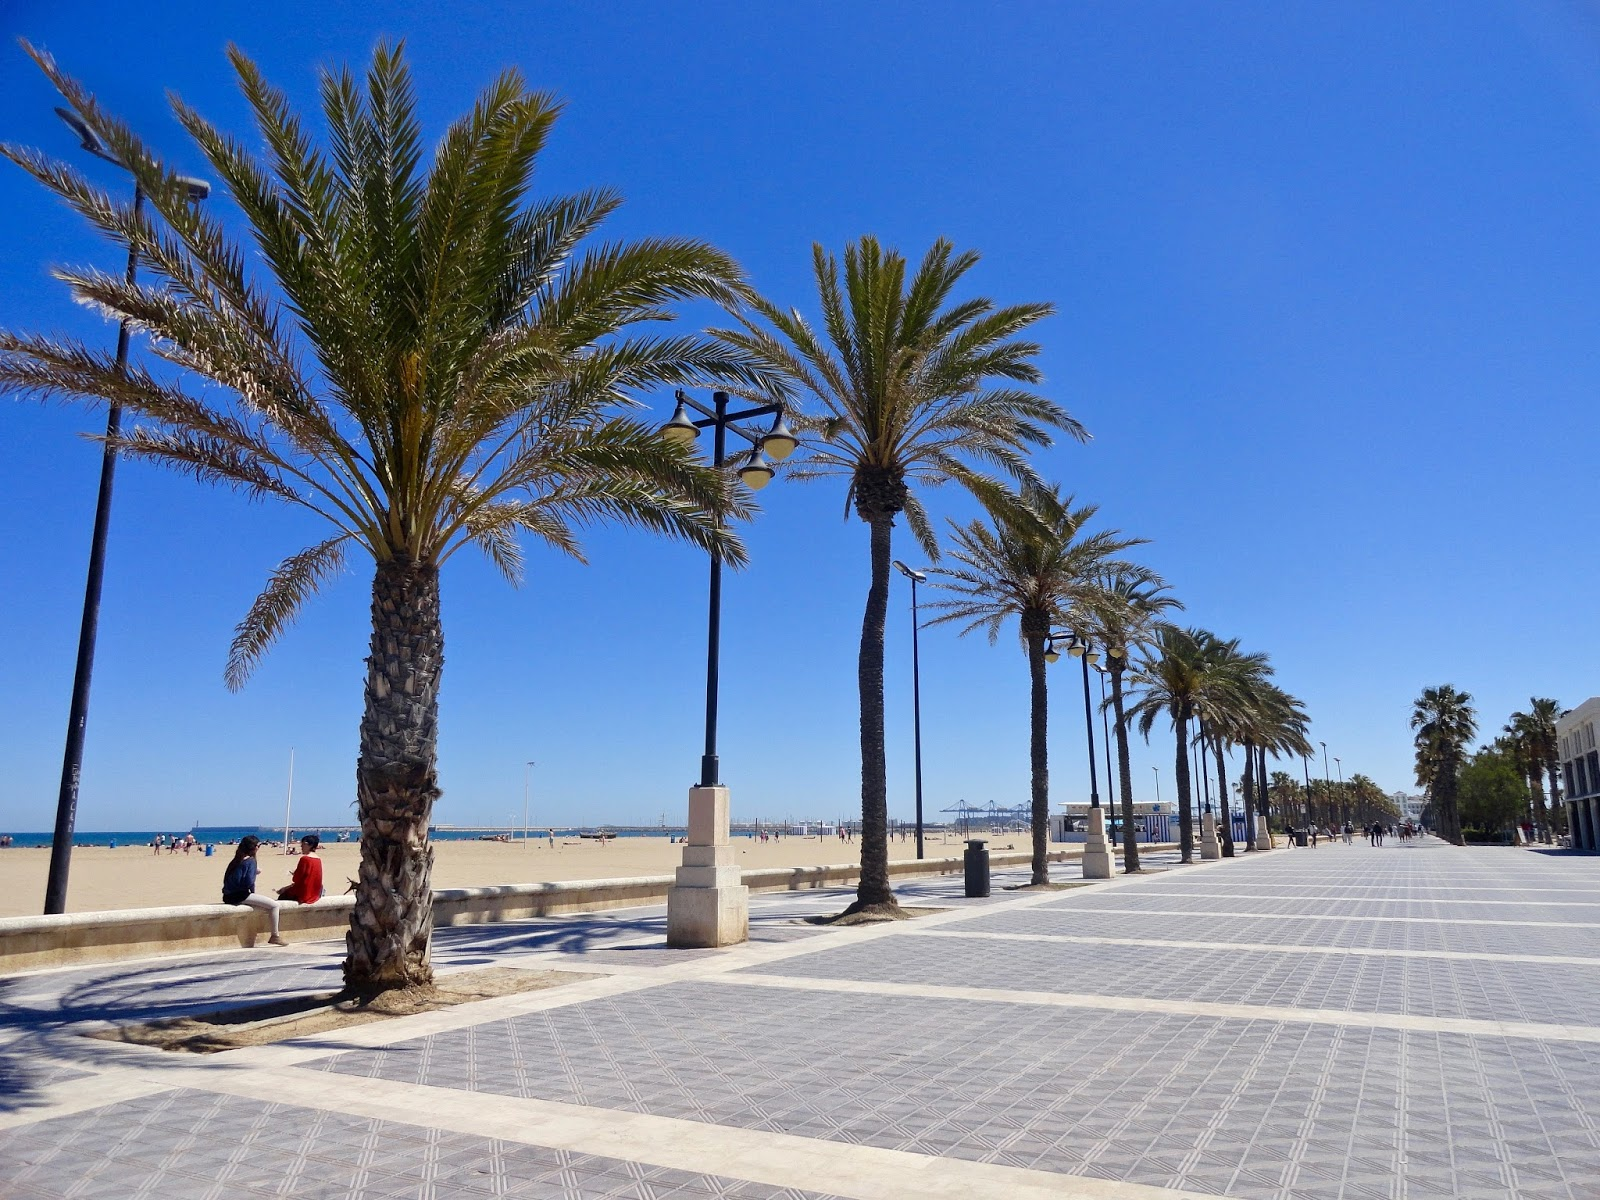 spain valencia beach playa palm trees sea